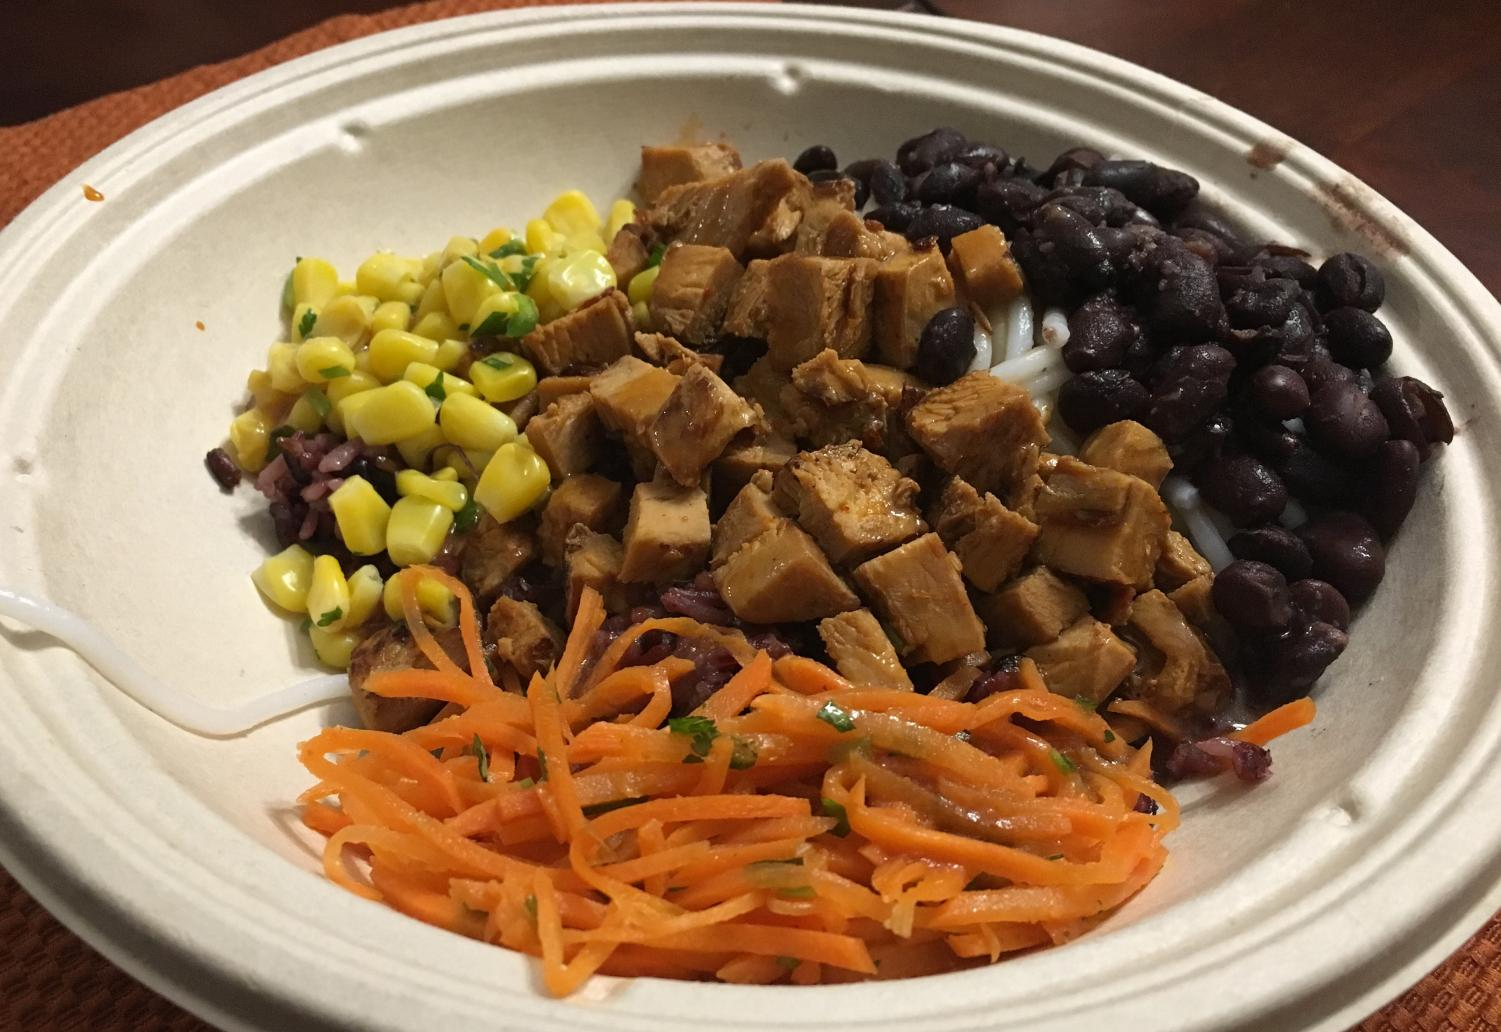 Bibibop serves tasty Korean-style food at low prices. Its diverse menu gives customers multiple ways to build their bowls, including purple rice and kimchee.